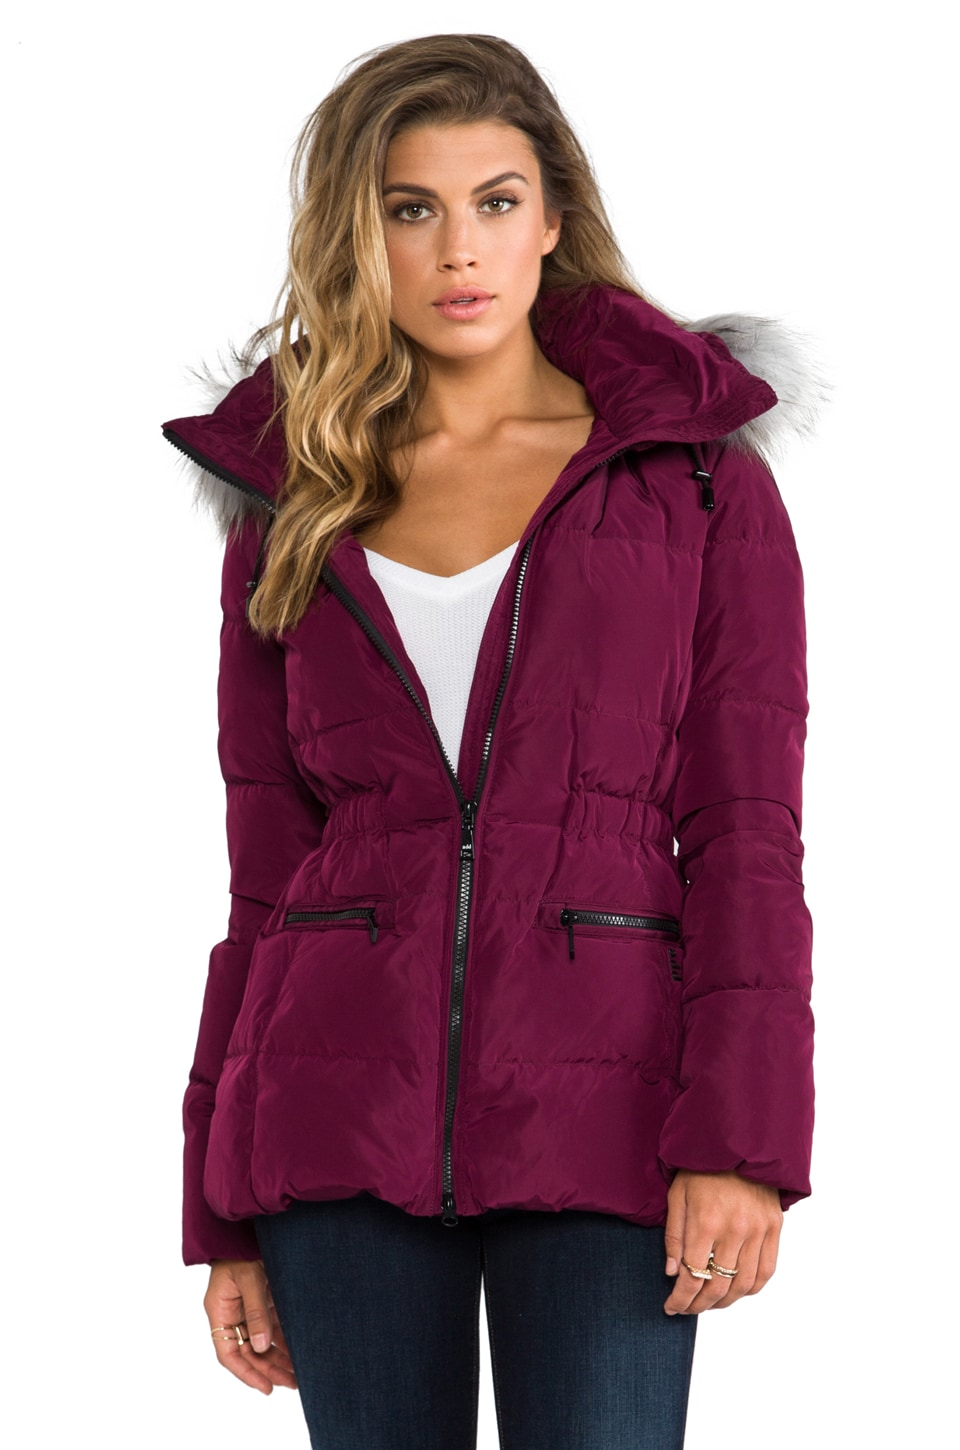 ADD Down Jacket With Fur Border in Deep Claret